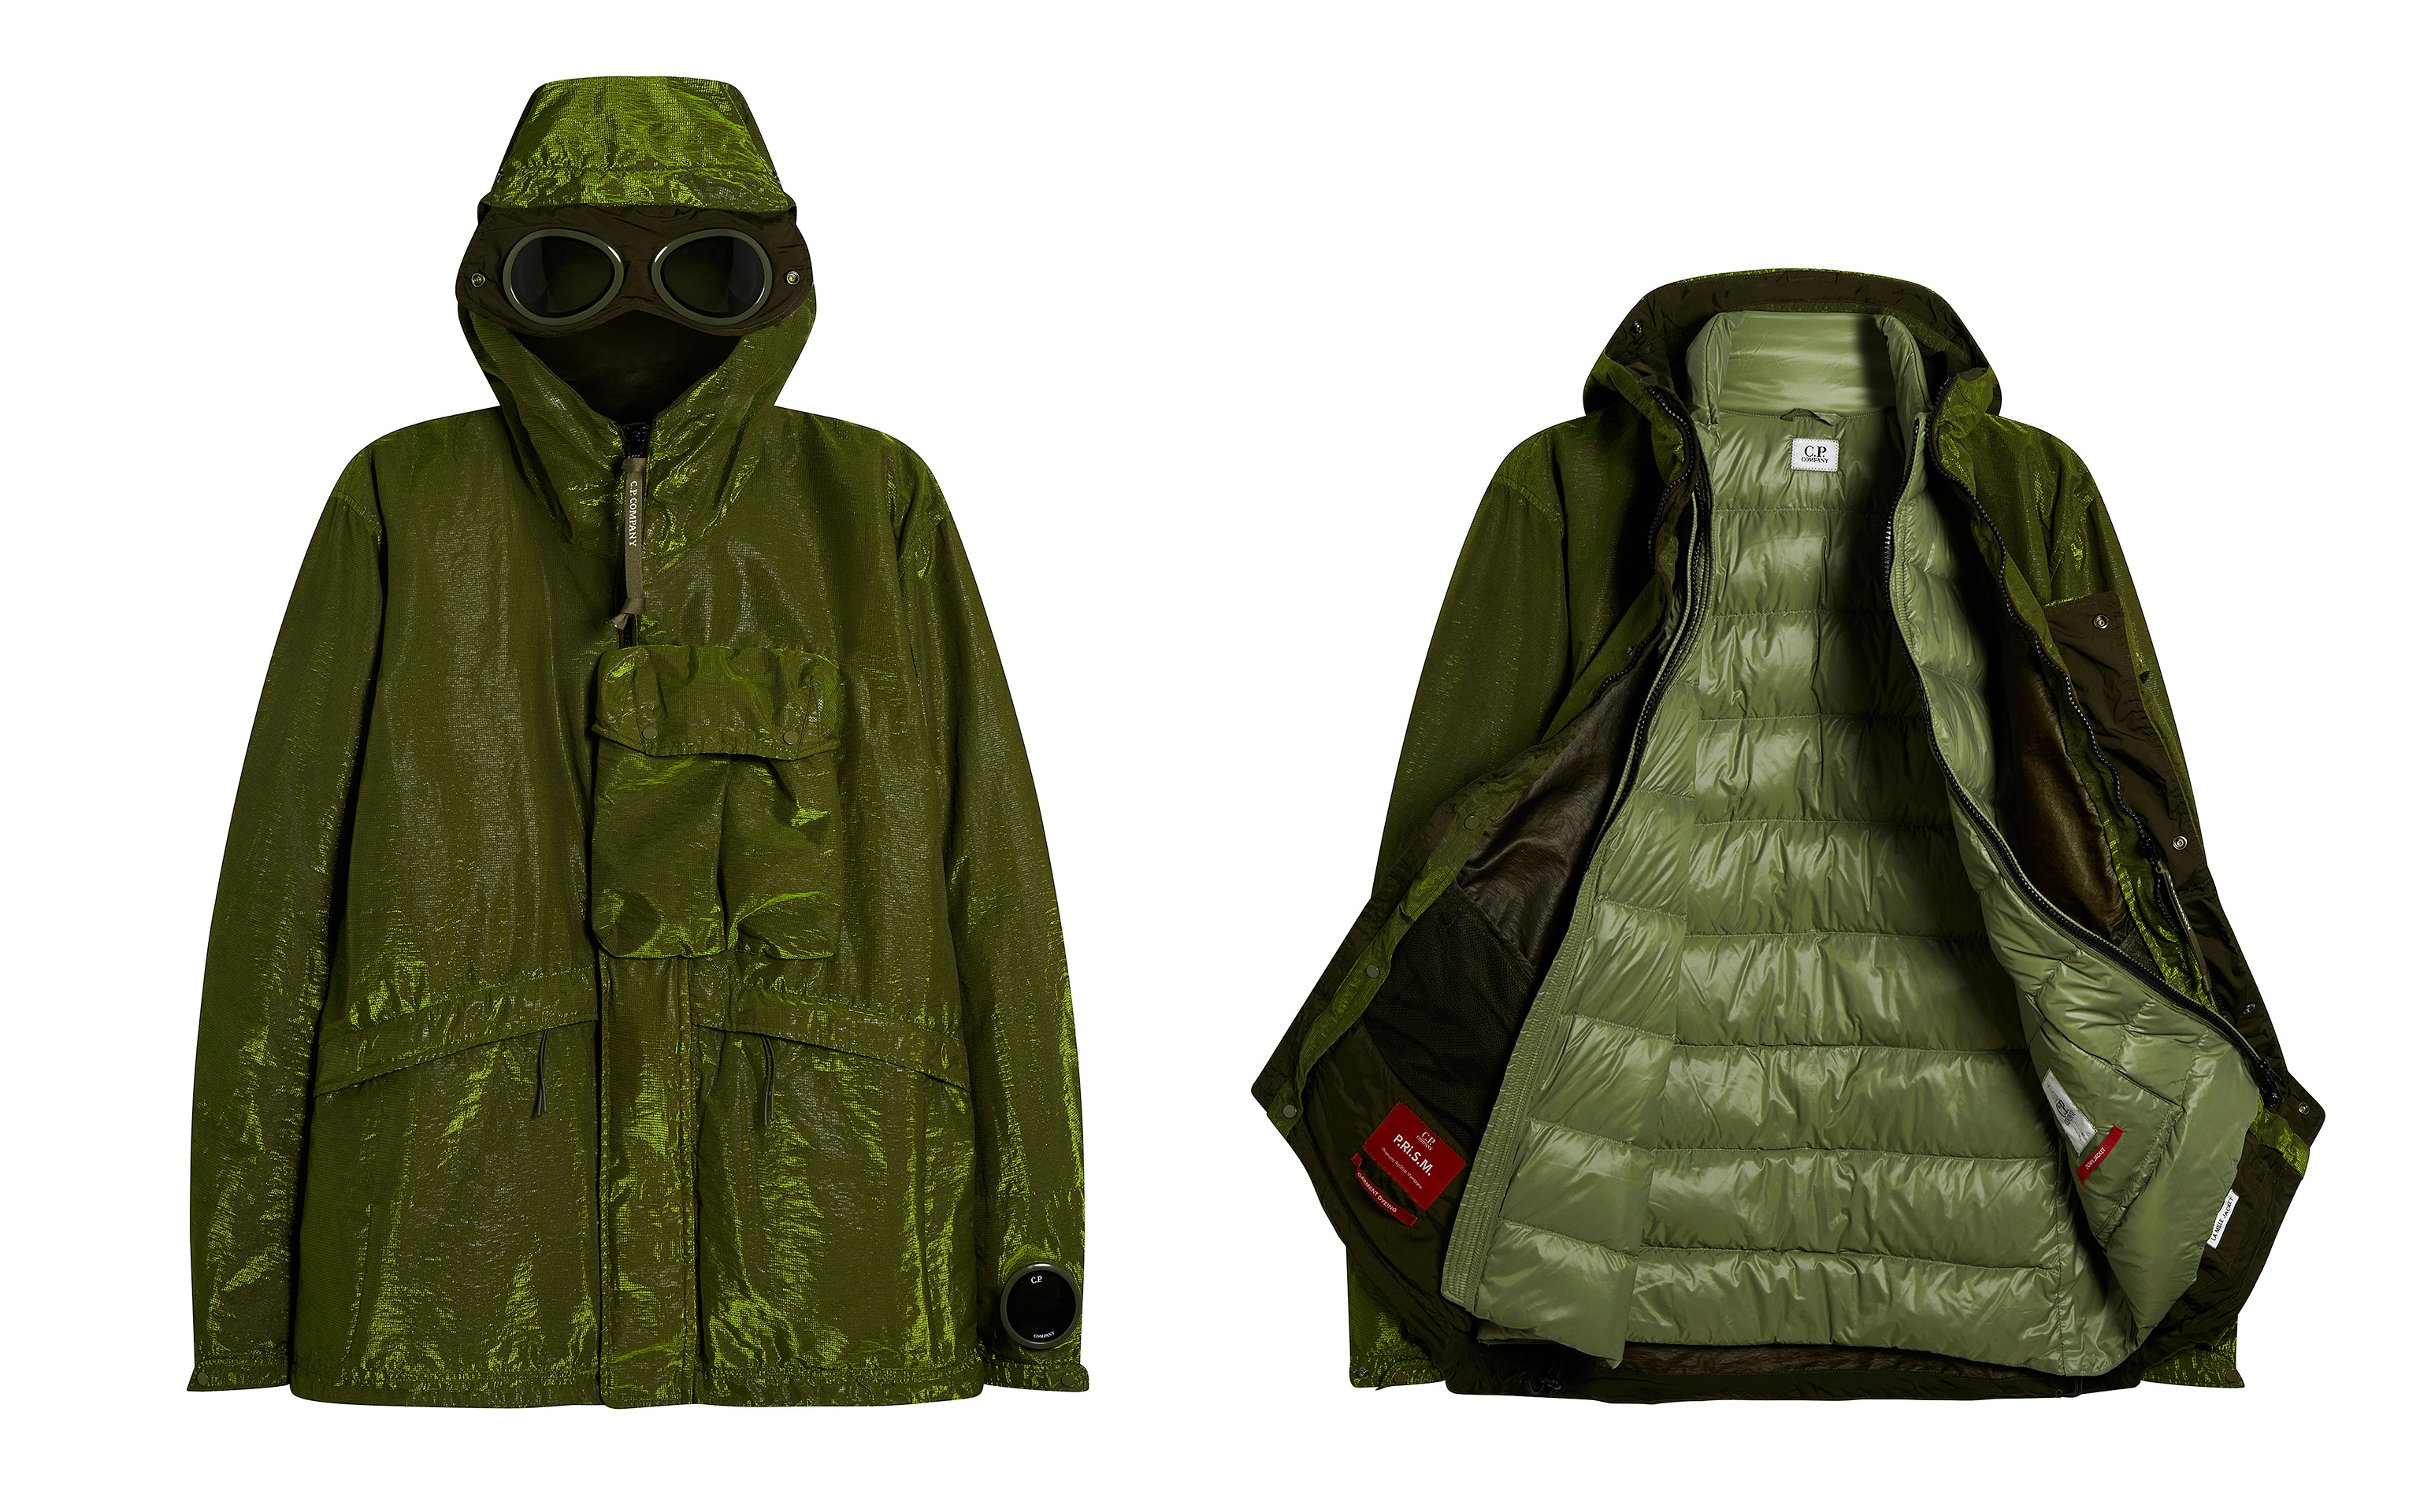 Picture of two moss green colour C.P. Company raincoats one open and the other closed, both on white background